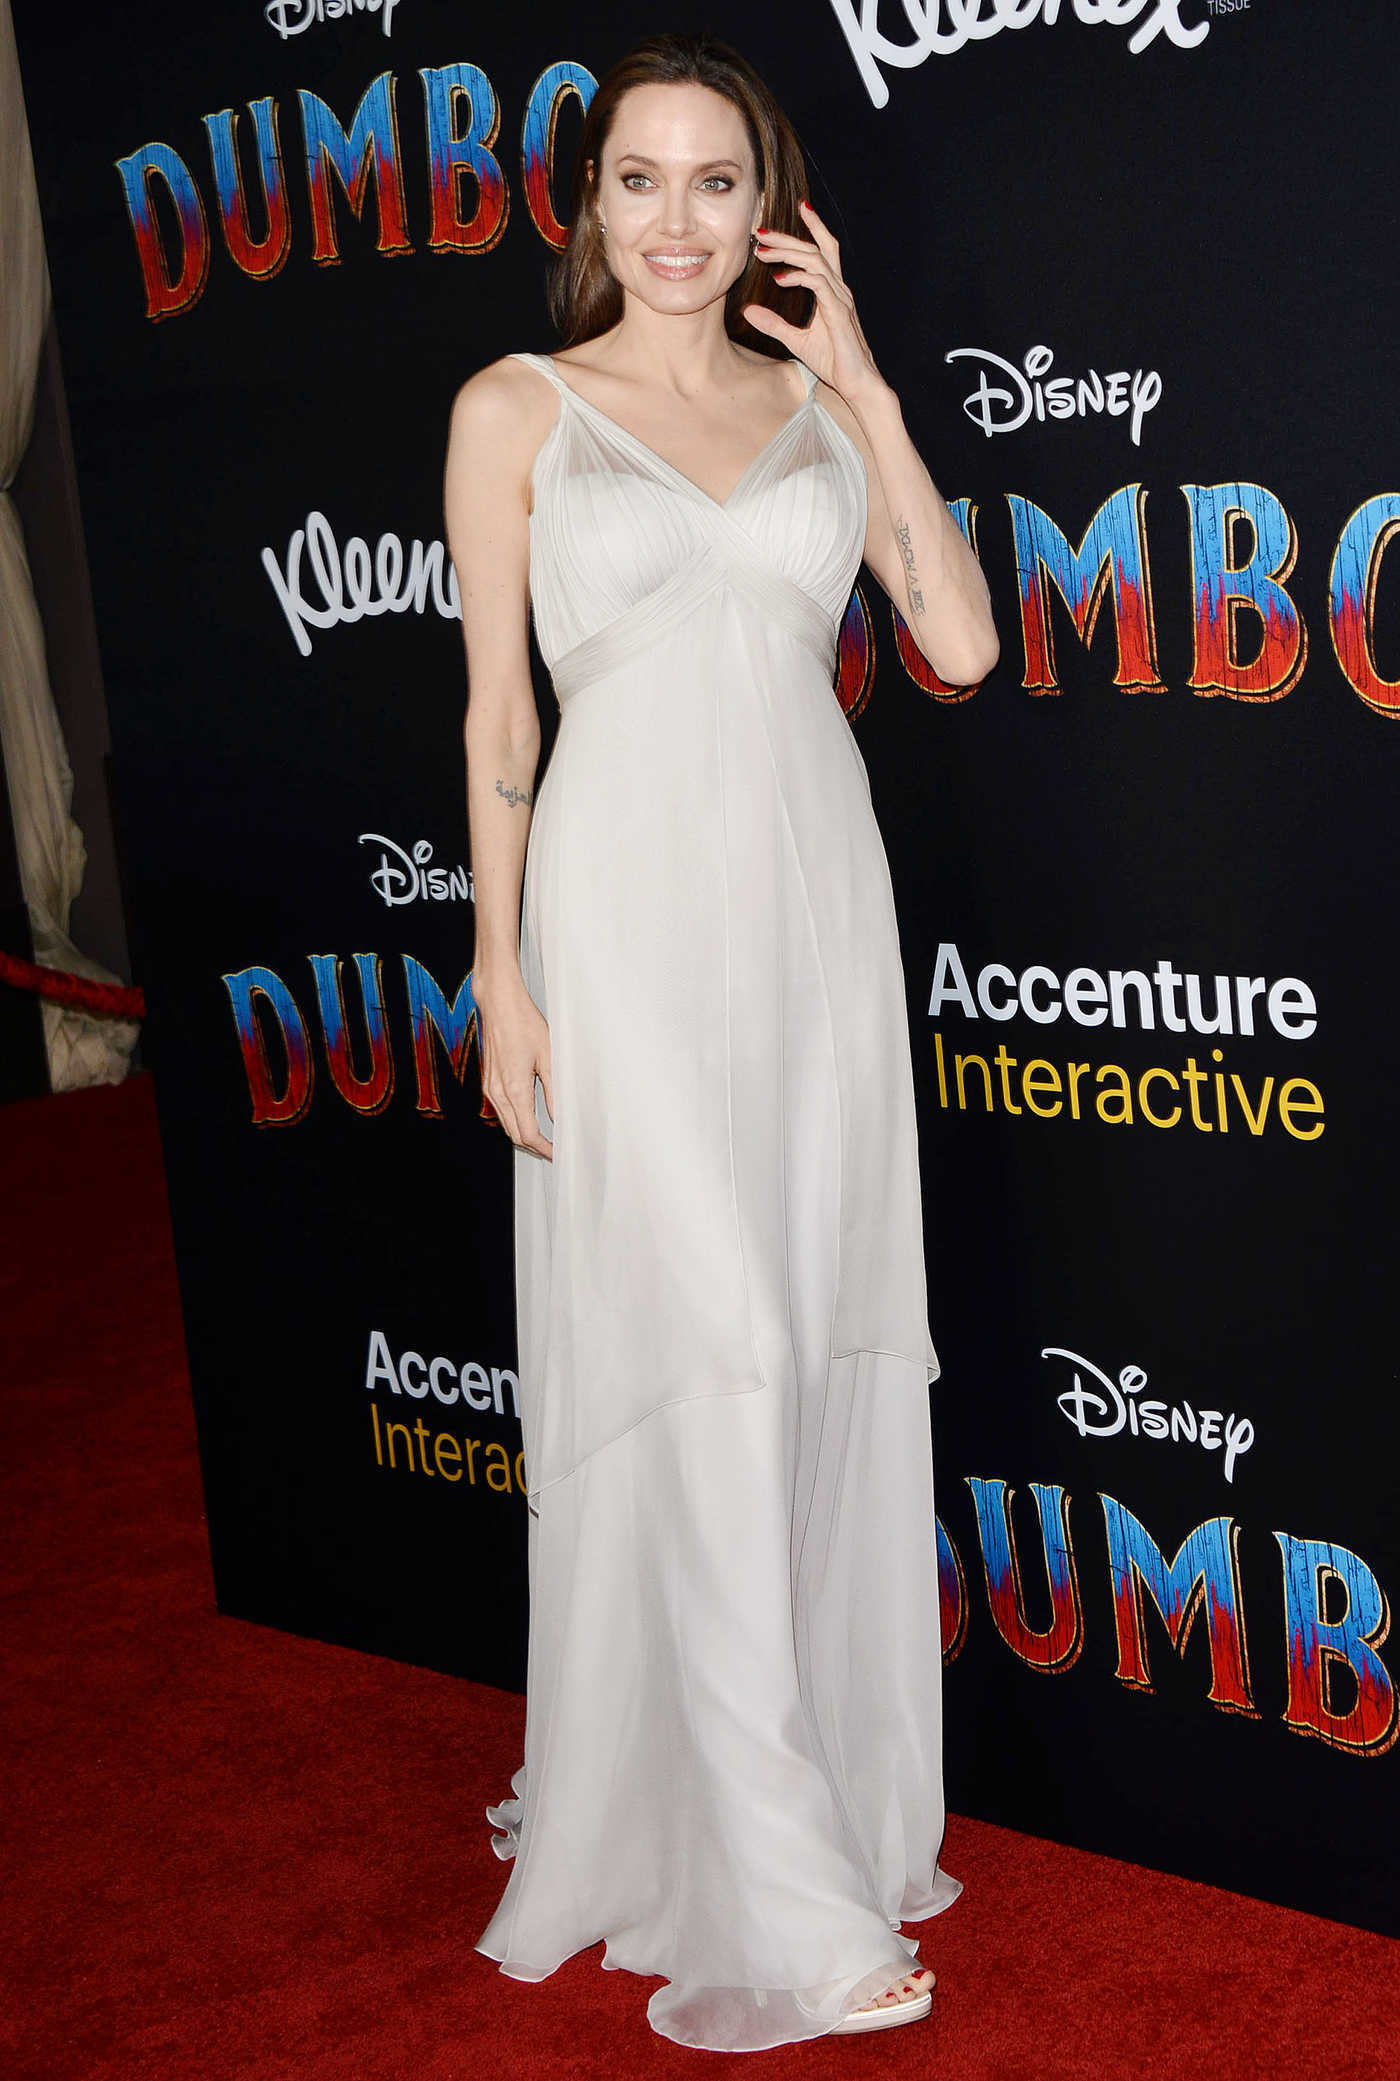 Angelina Jolie Attends Disney's Dumbo World Premiere in Hollywood 03/11/2019